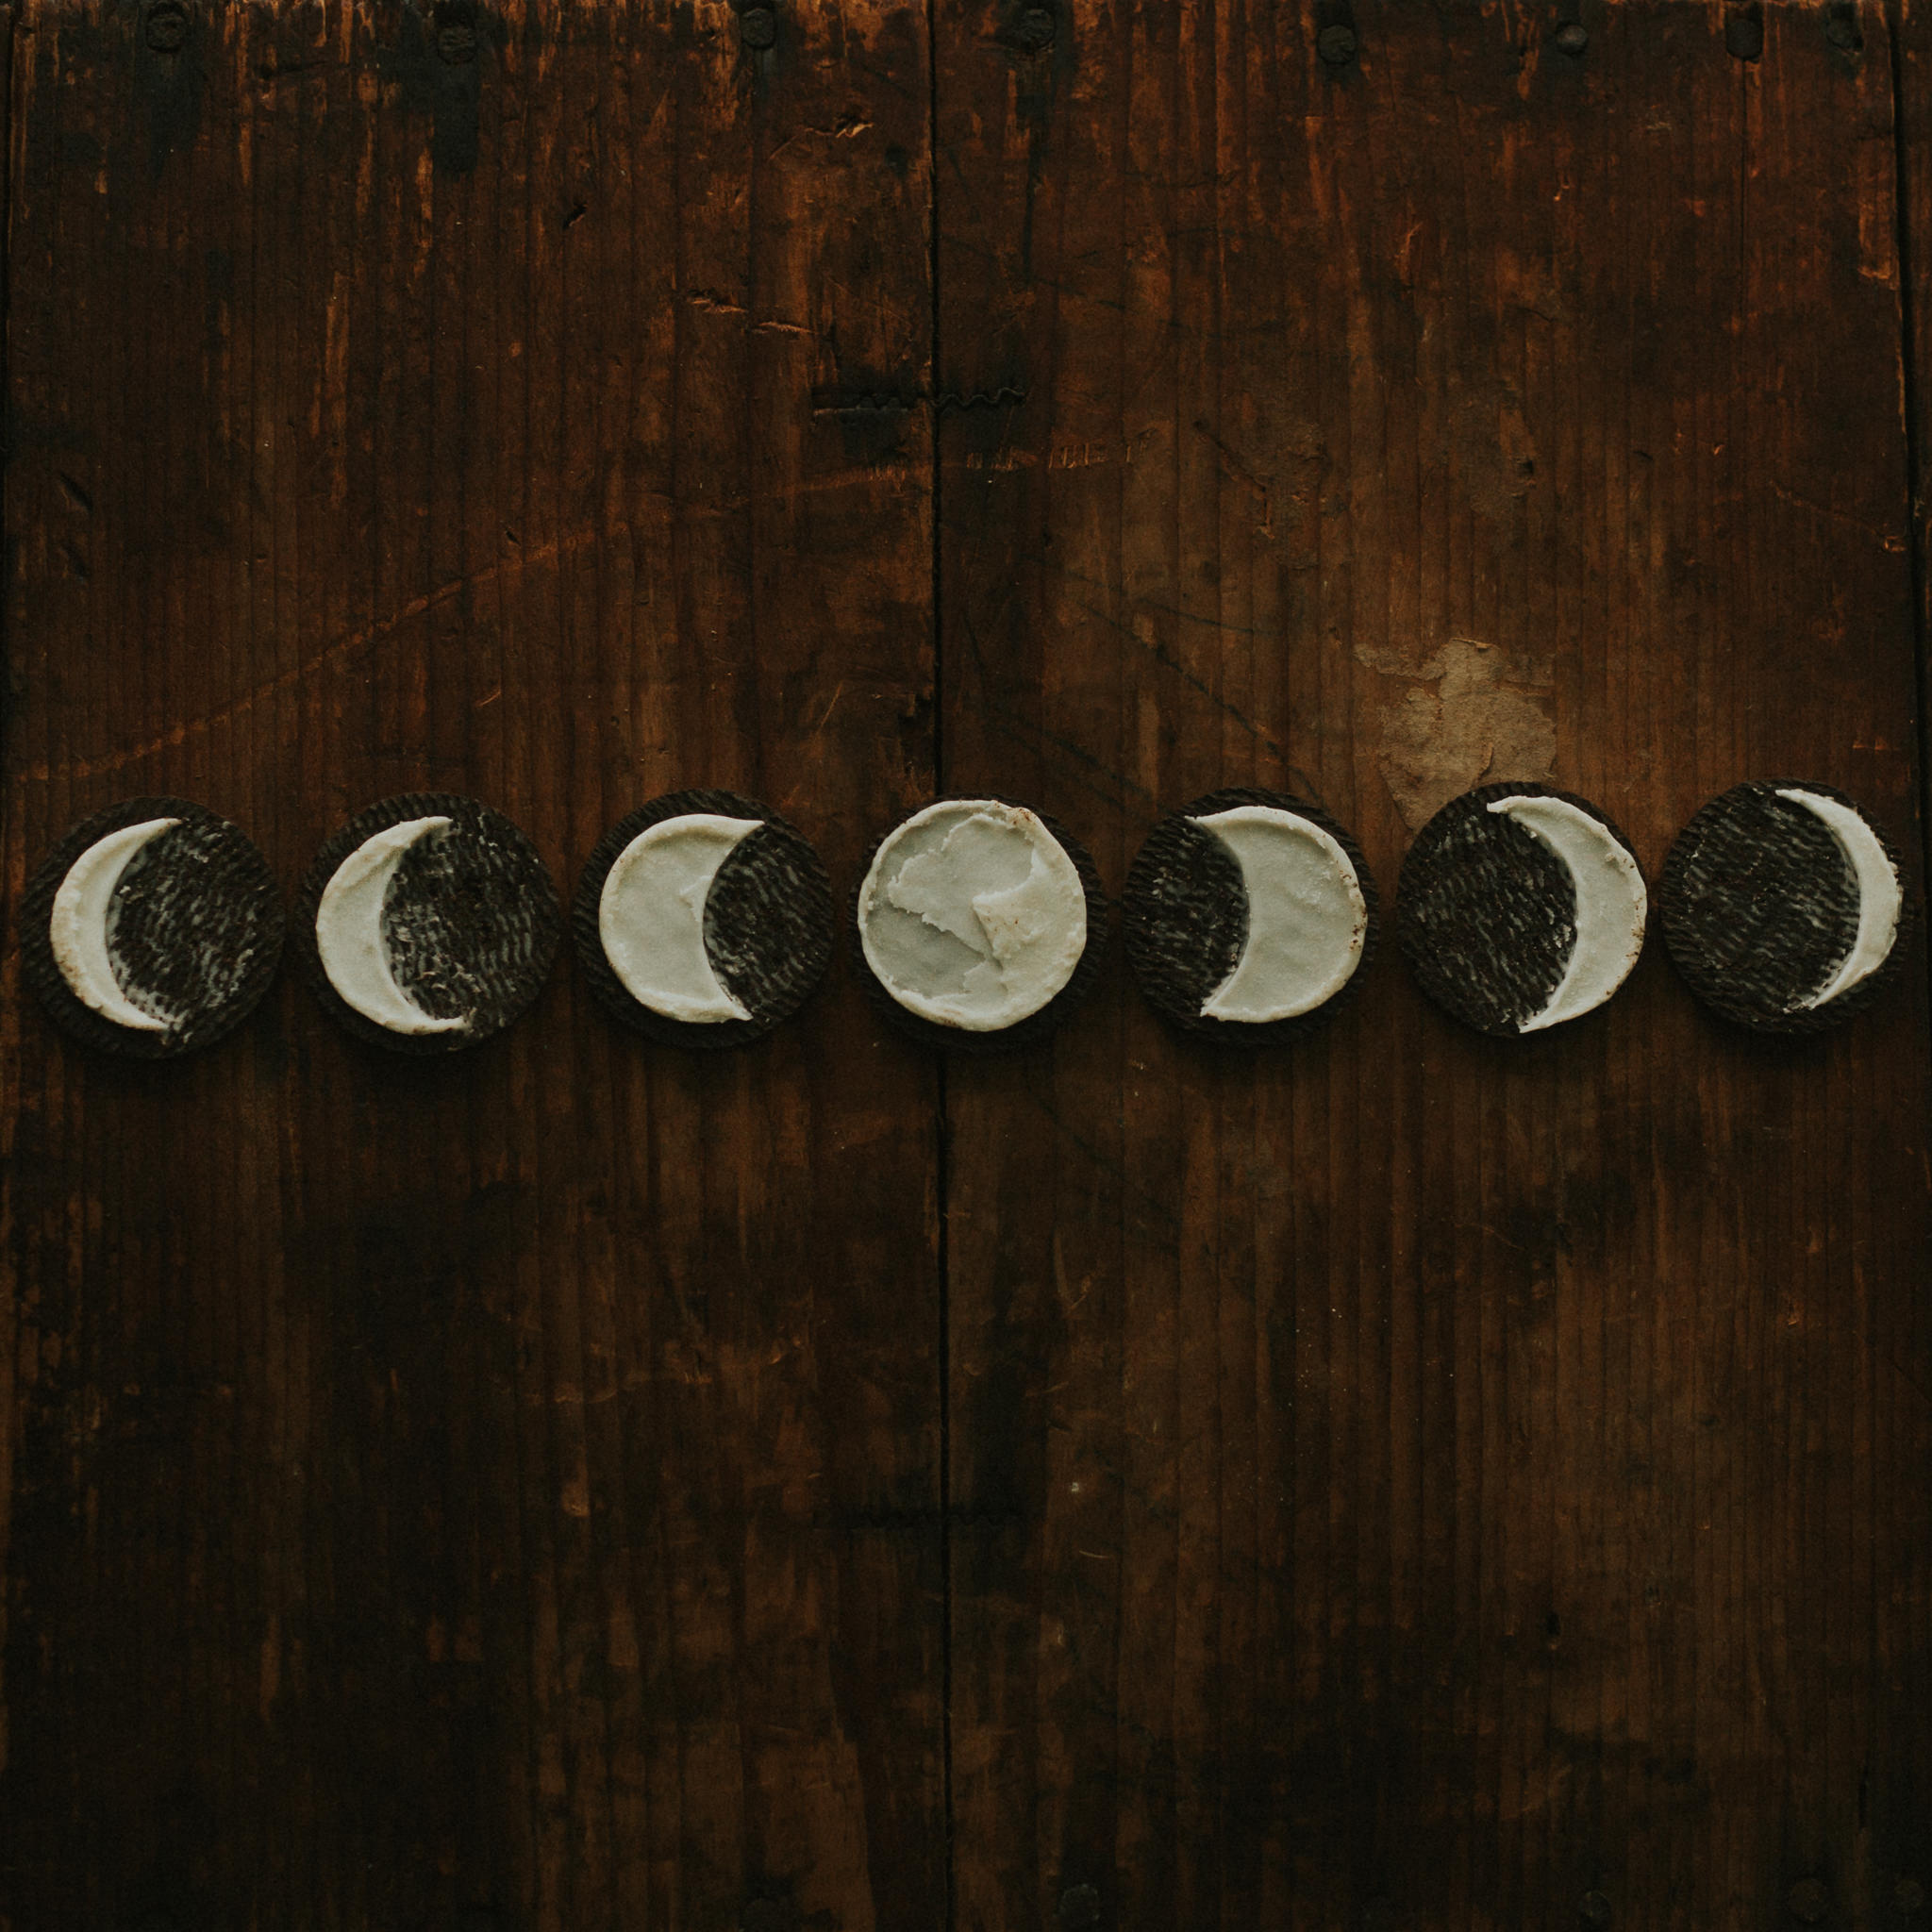 a picture of oreo's that show the moon phases